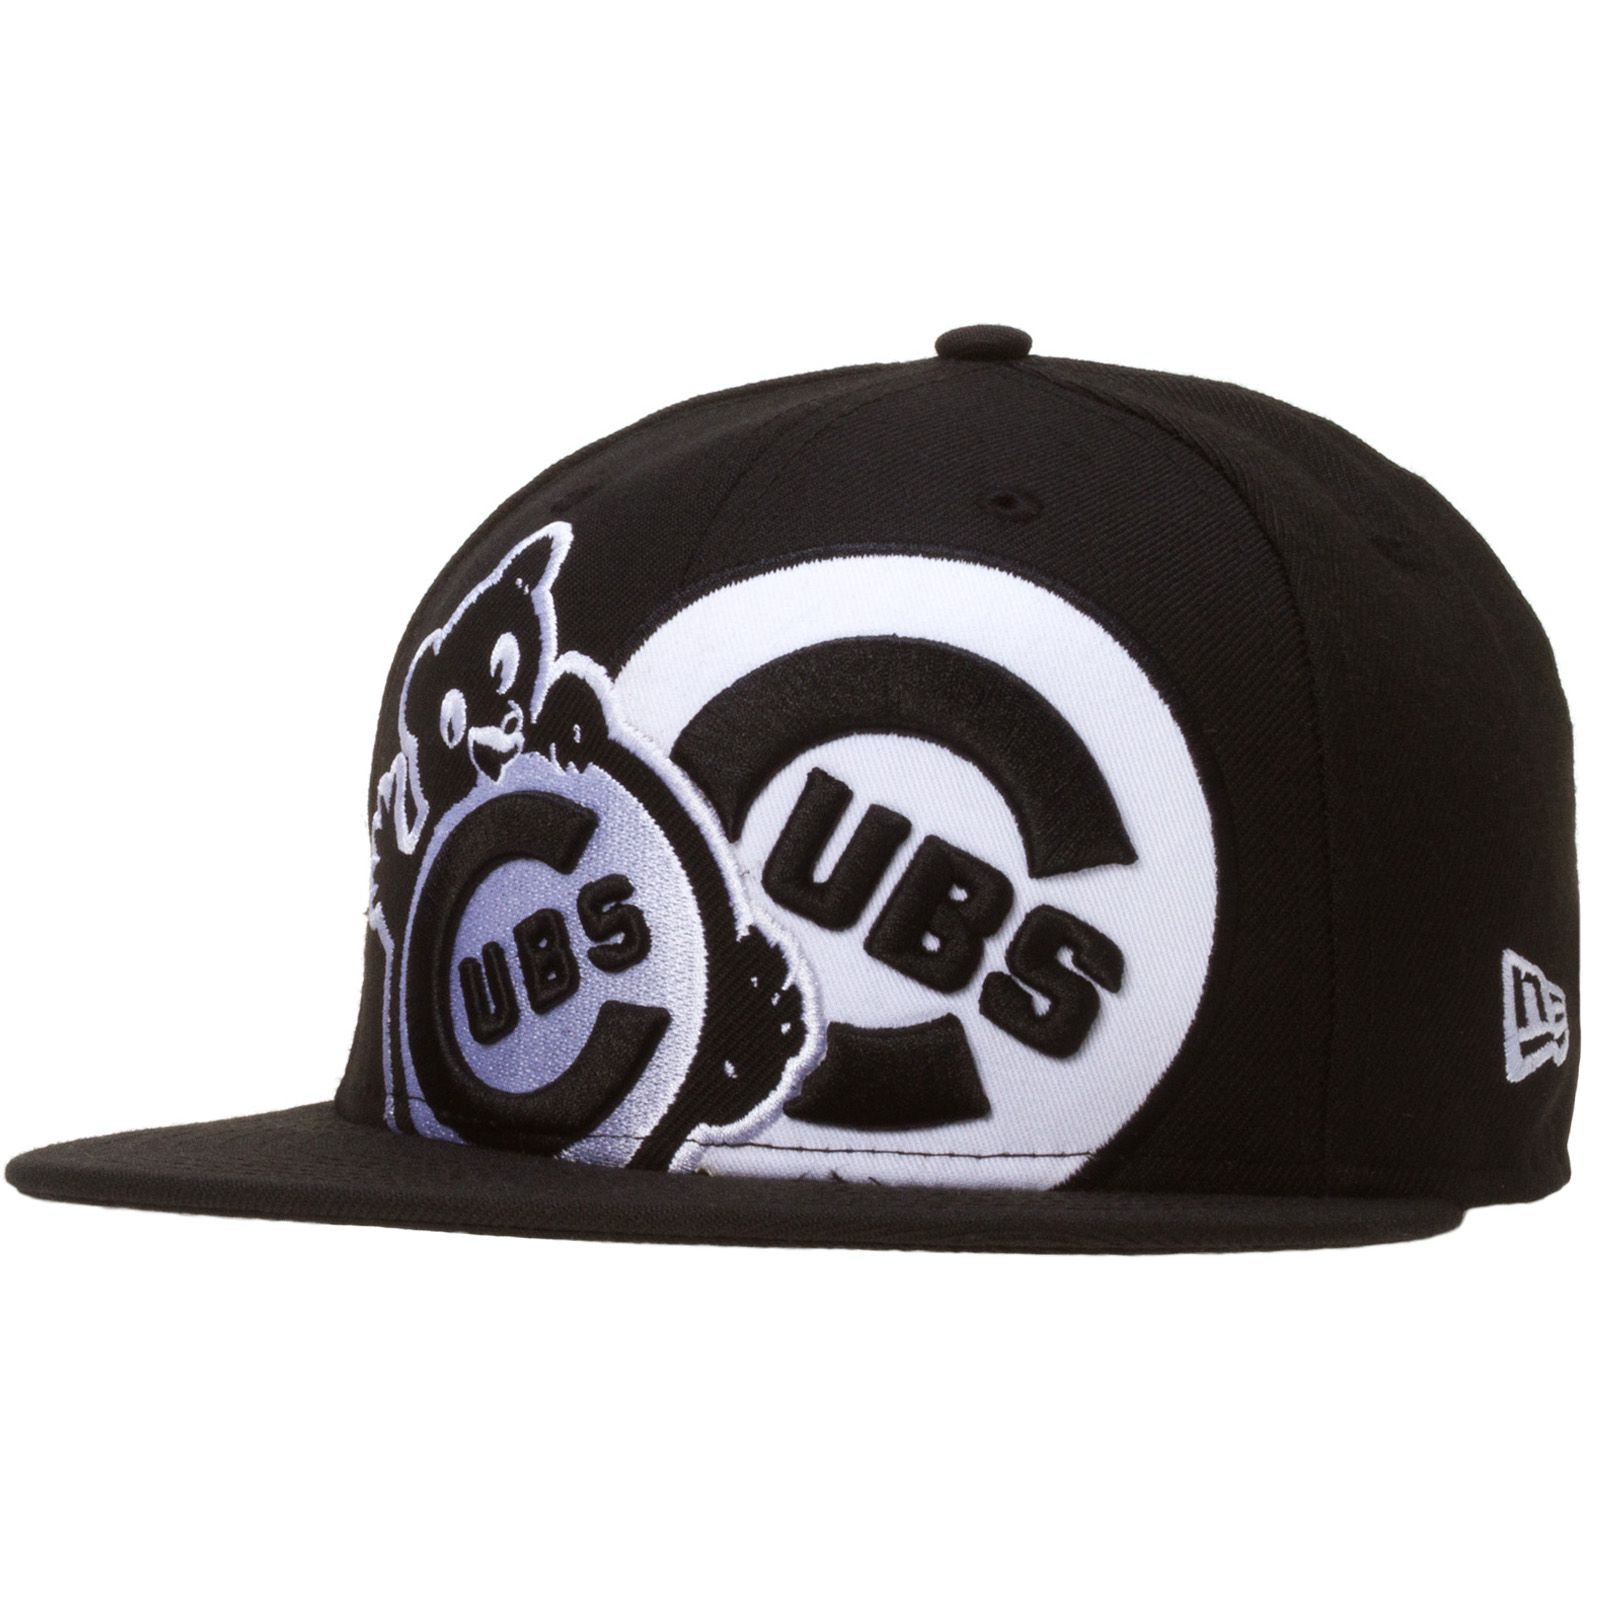 91e06fd9f34 Chicago Cubs Black and White Dual Logo Fitted Hat by New Era  Chicago  Cubs   ChicagoCubs